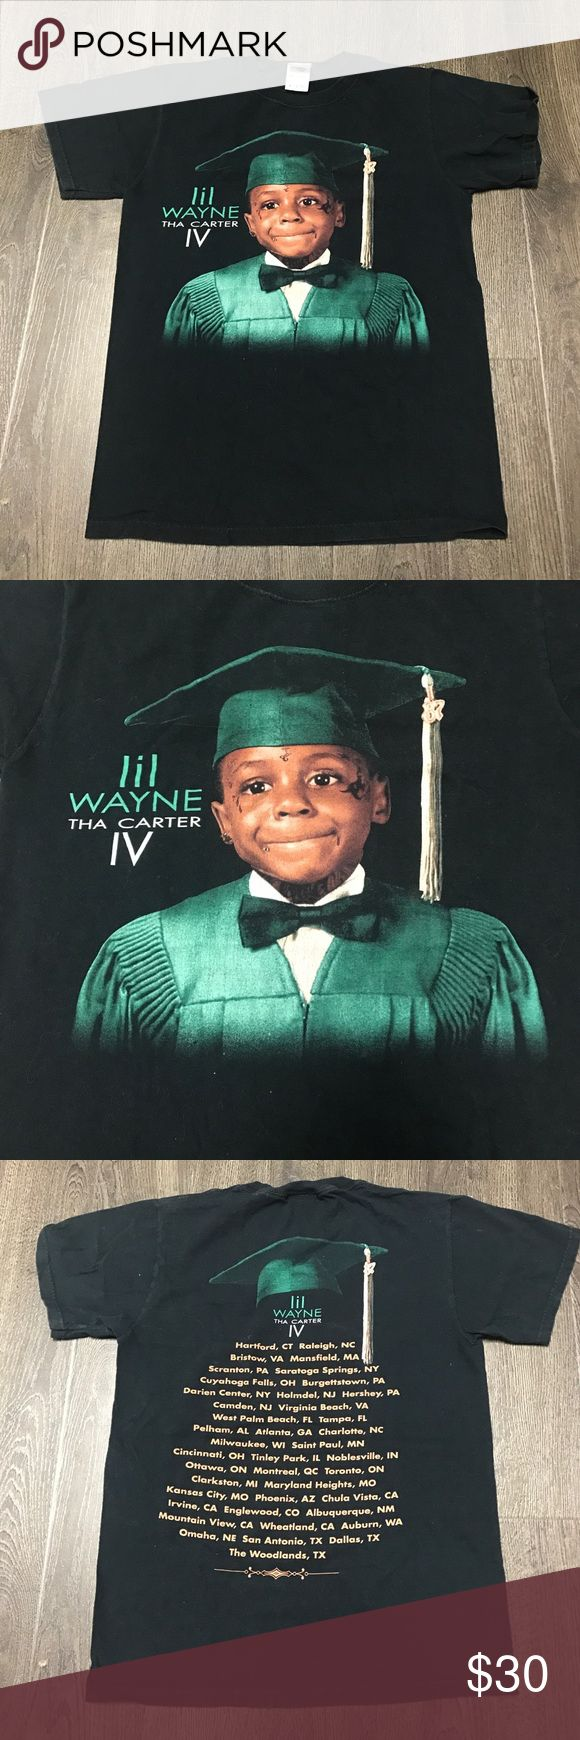 Rap Tee: Lil Wayne Tha Carter IV Tour Shirt Rap Tee: Lil Wayne Tha Carter IV Tour Shirt. Size S. DM for questions! 2011 Supreme Shirts Tees - Short Sleeve